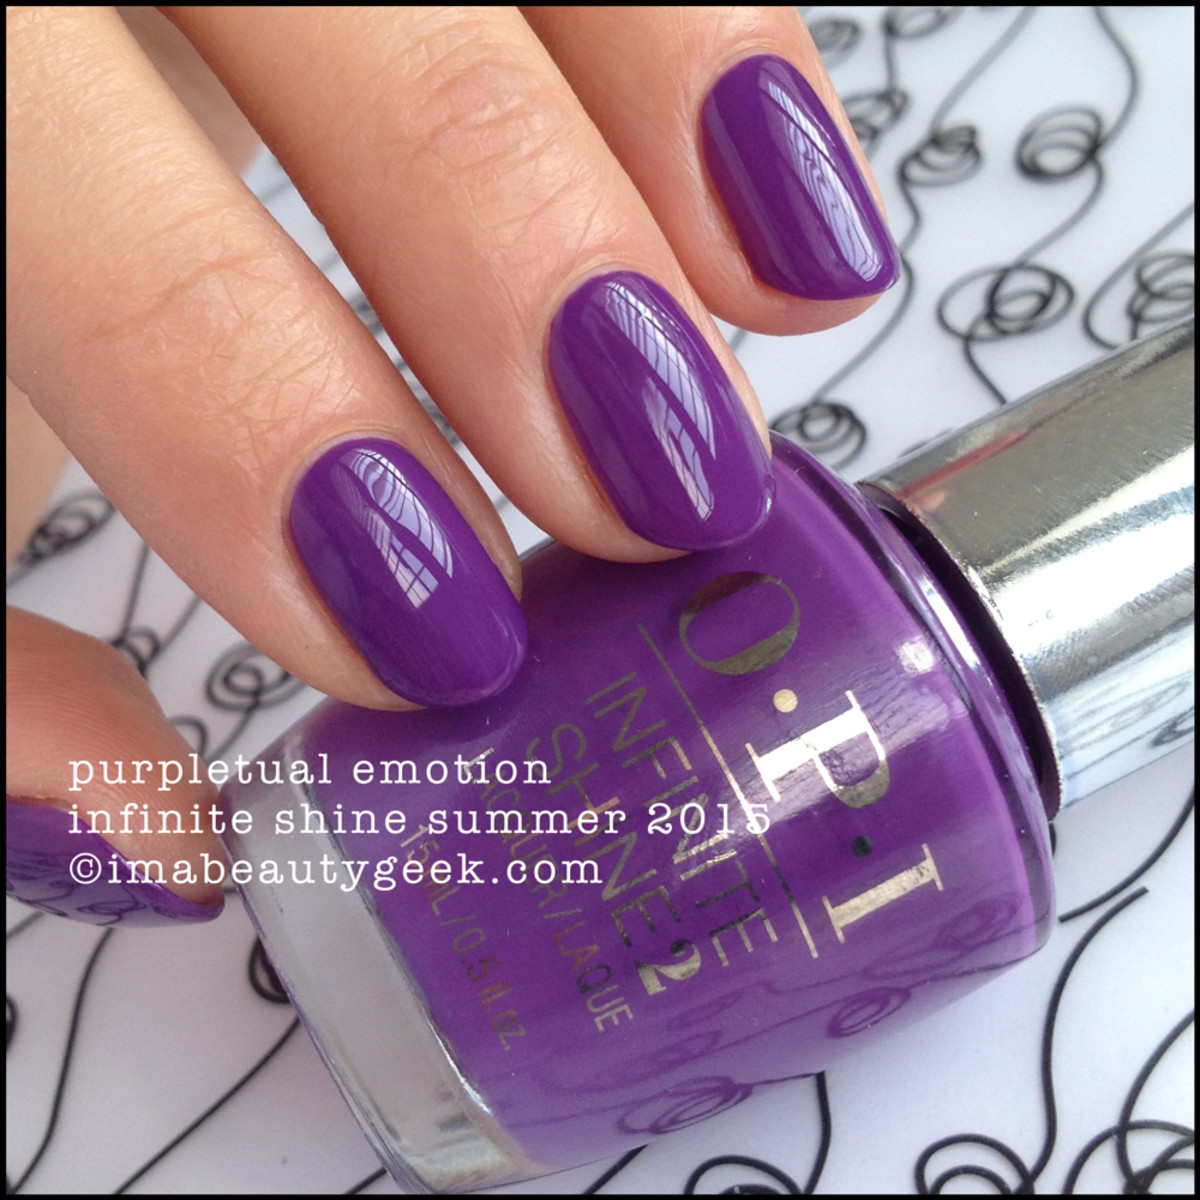 OPI Infinite Shine OPI Purpletual Emotion Summer 2015